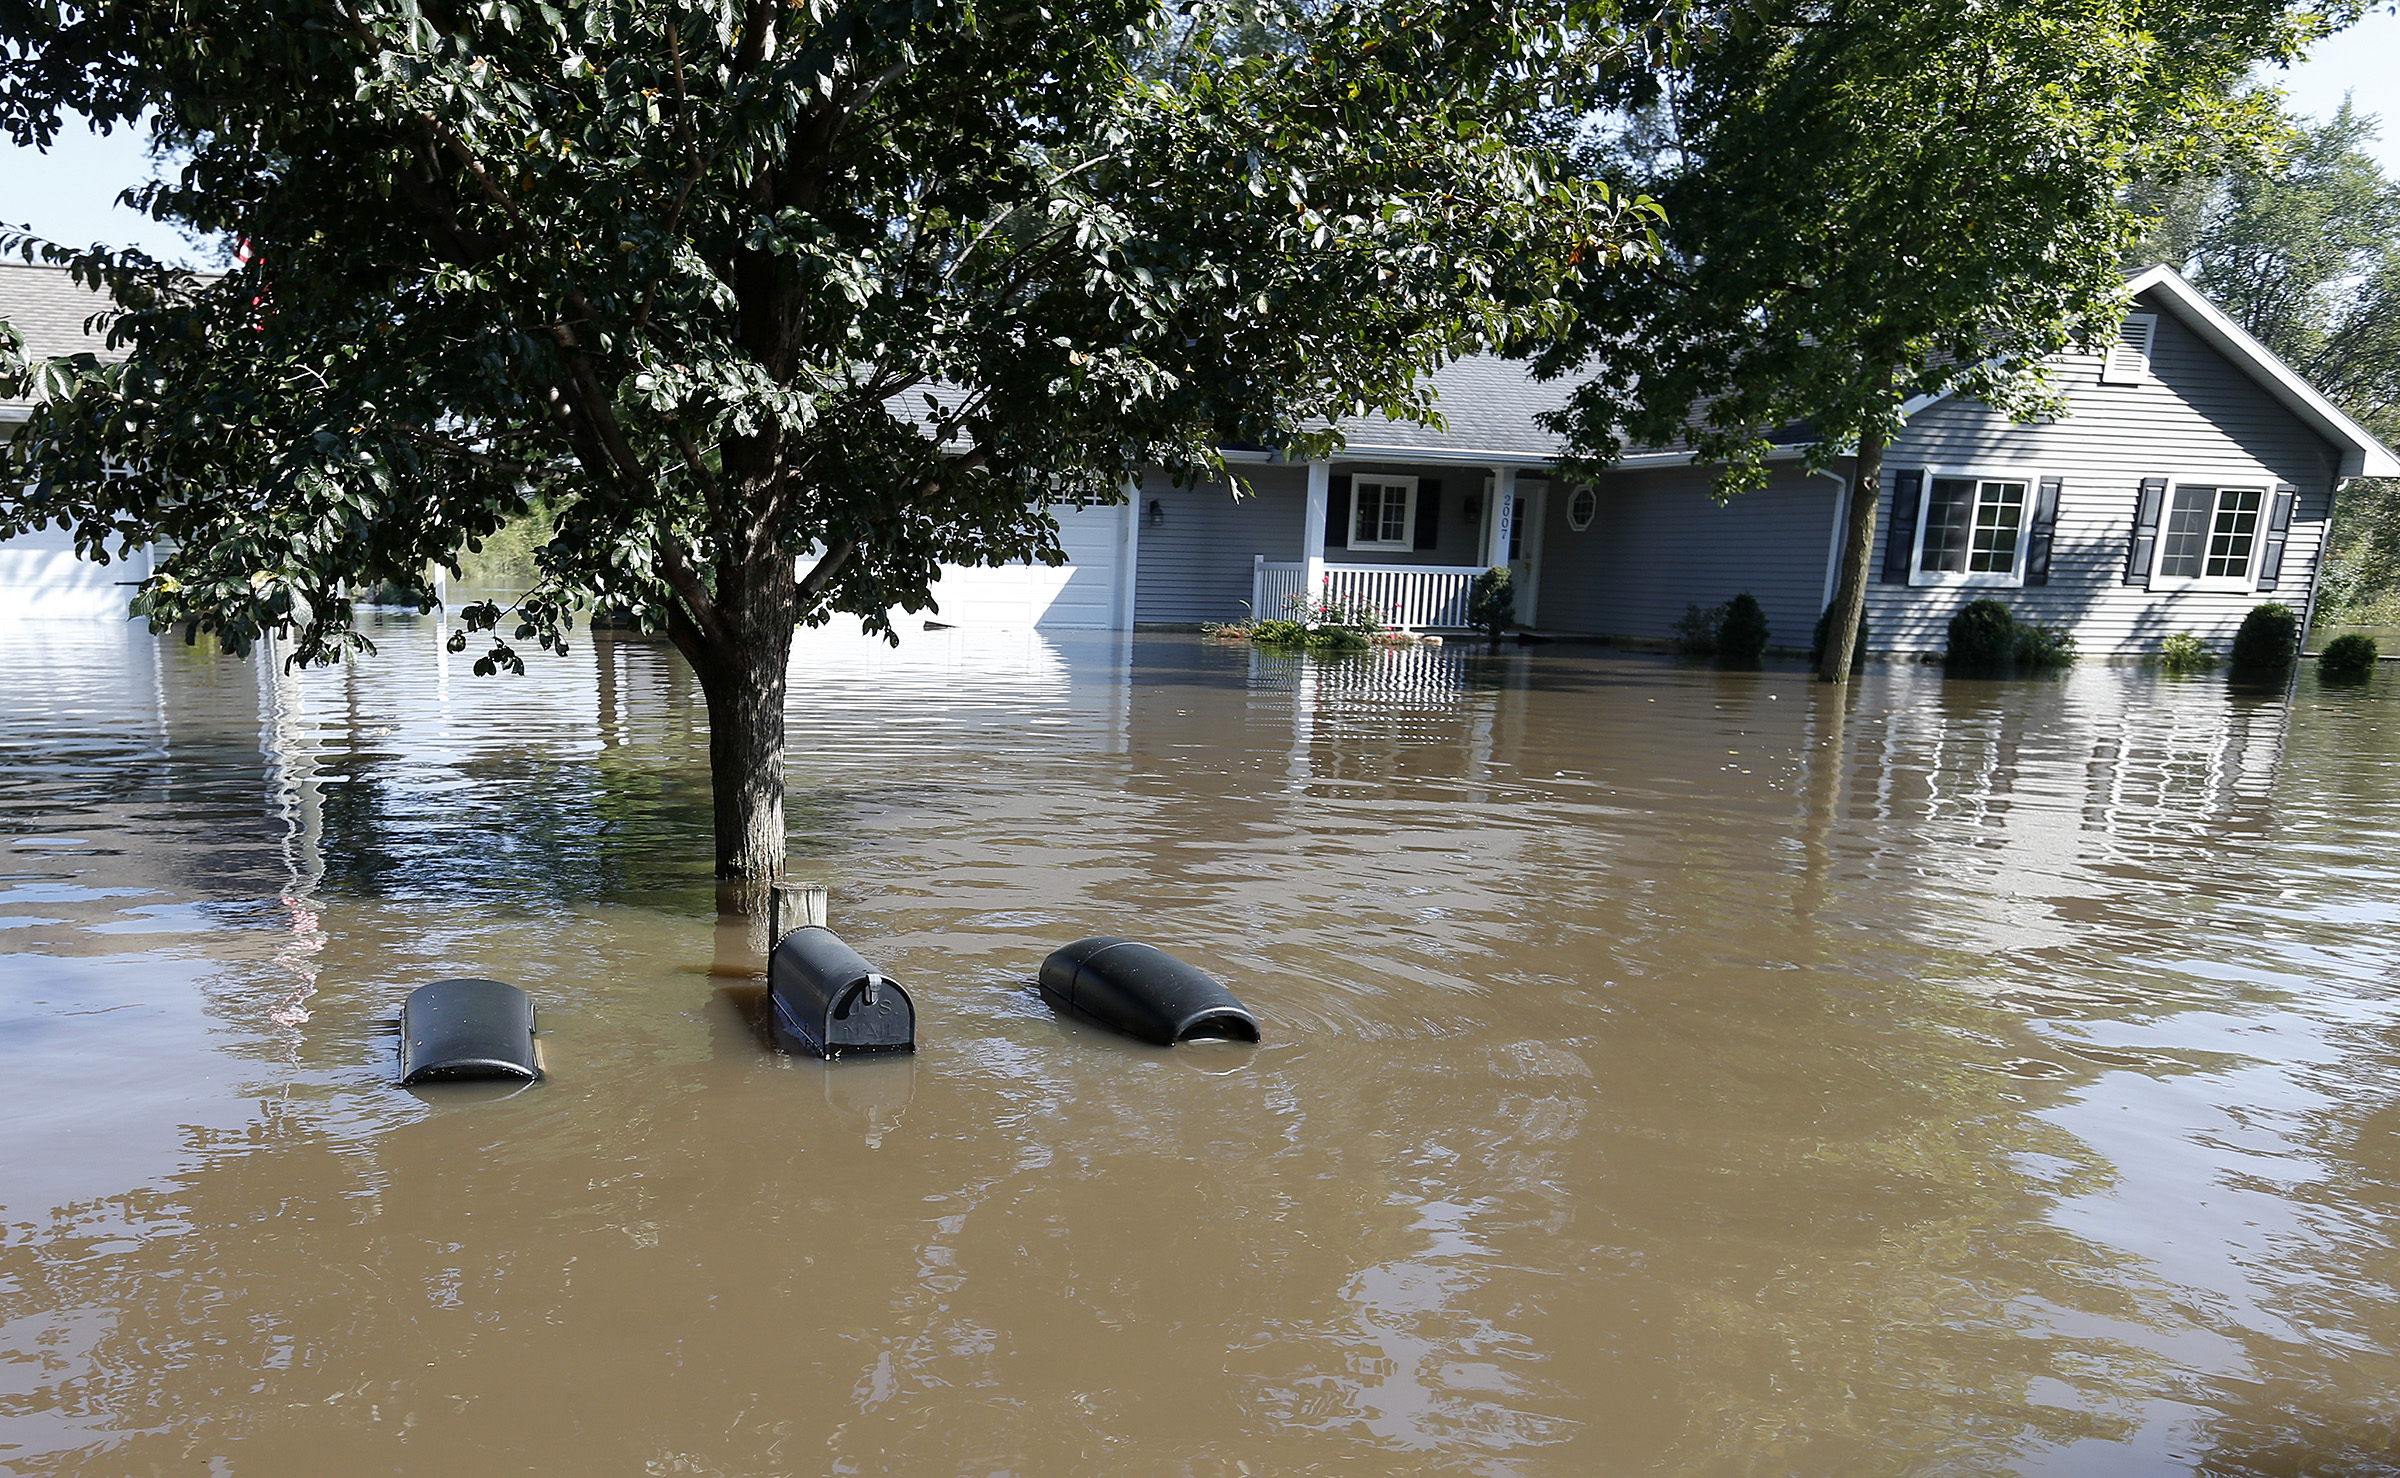 The tops of mailboxes barely break the surface of floodwaters from the Cedar River in the North Cedar neighborhood of Cedar Falls, Iowa, Sept. 24, 2016.